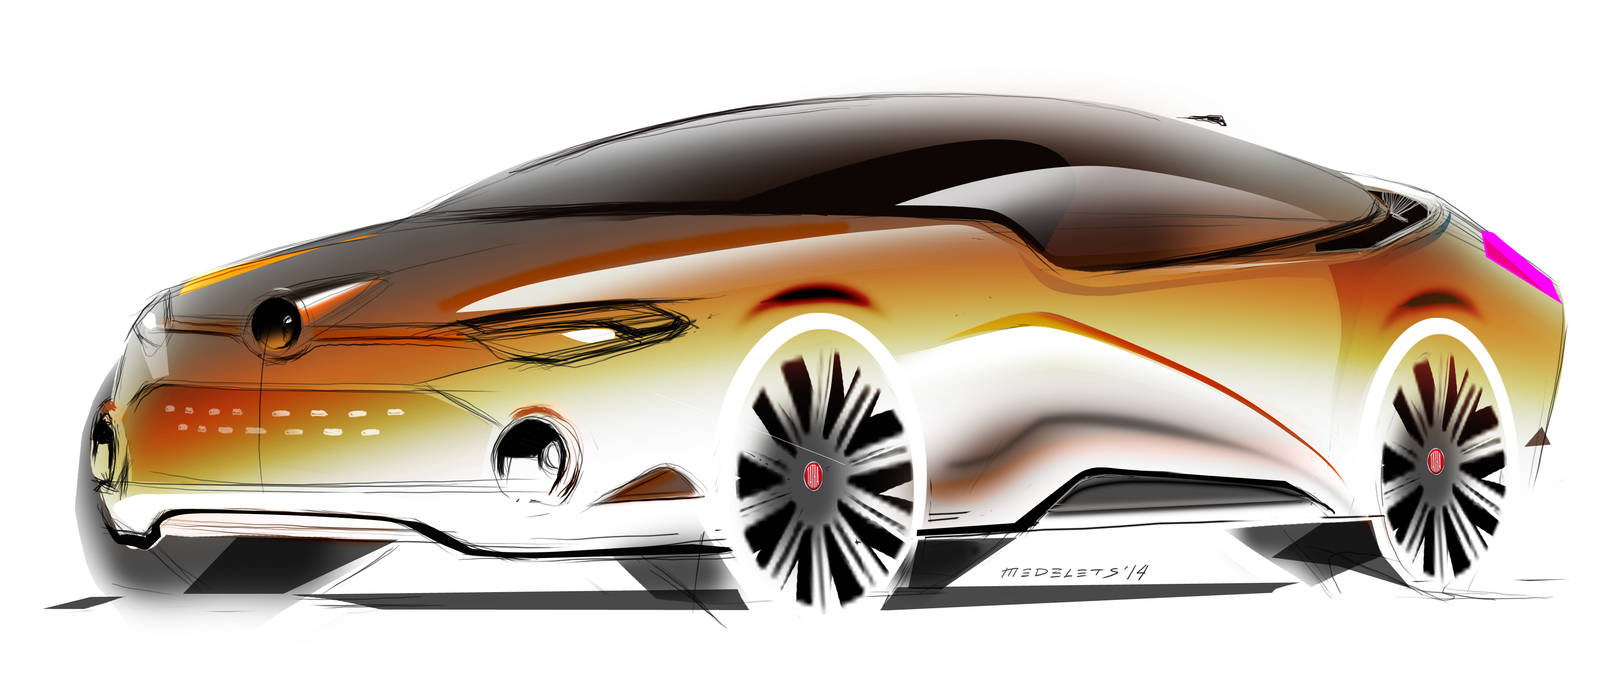 Tatra sedan Sketch Fighter SPD 2014